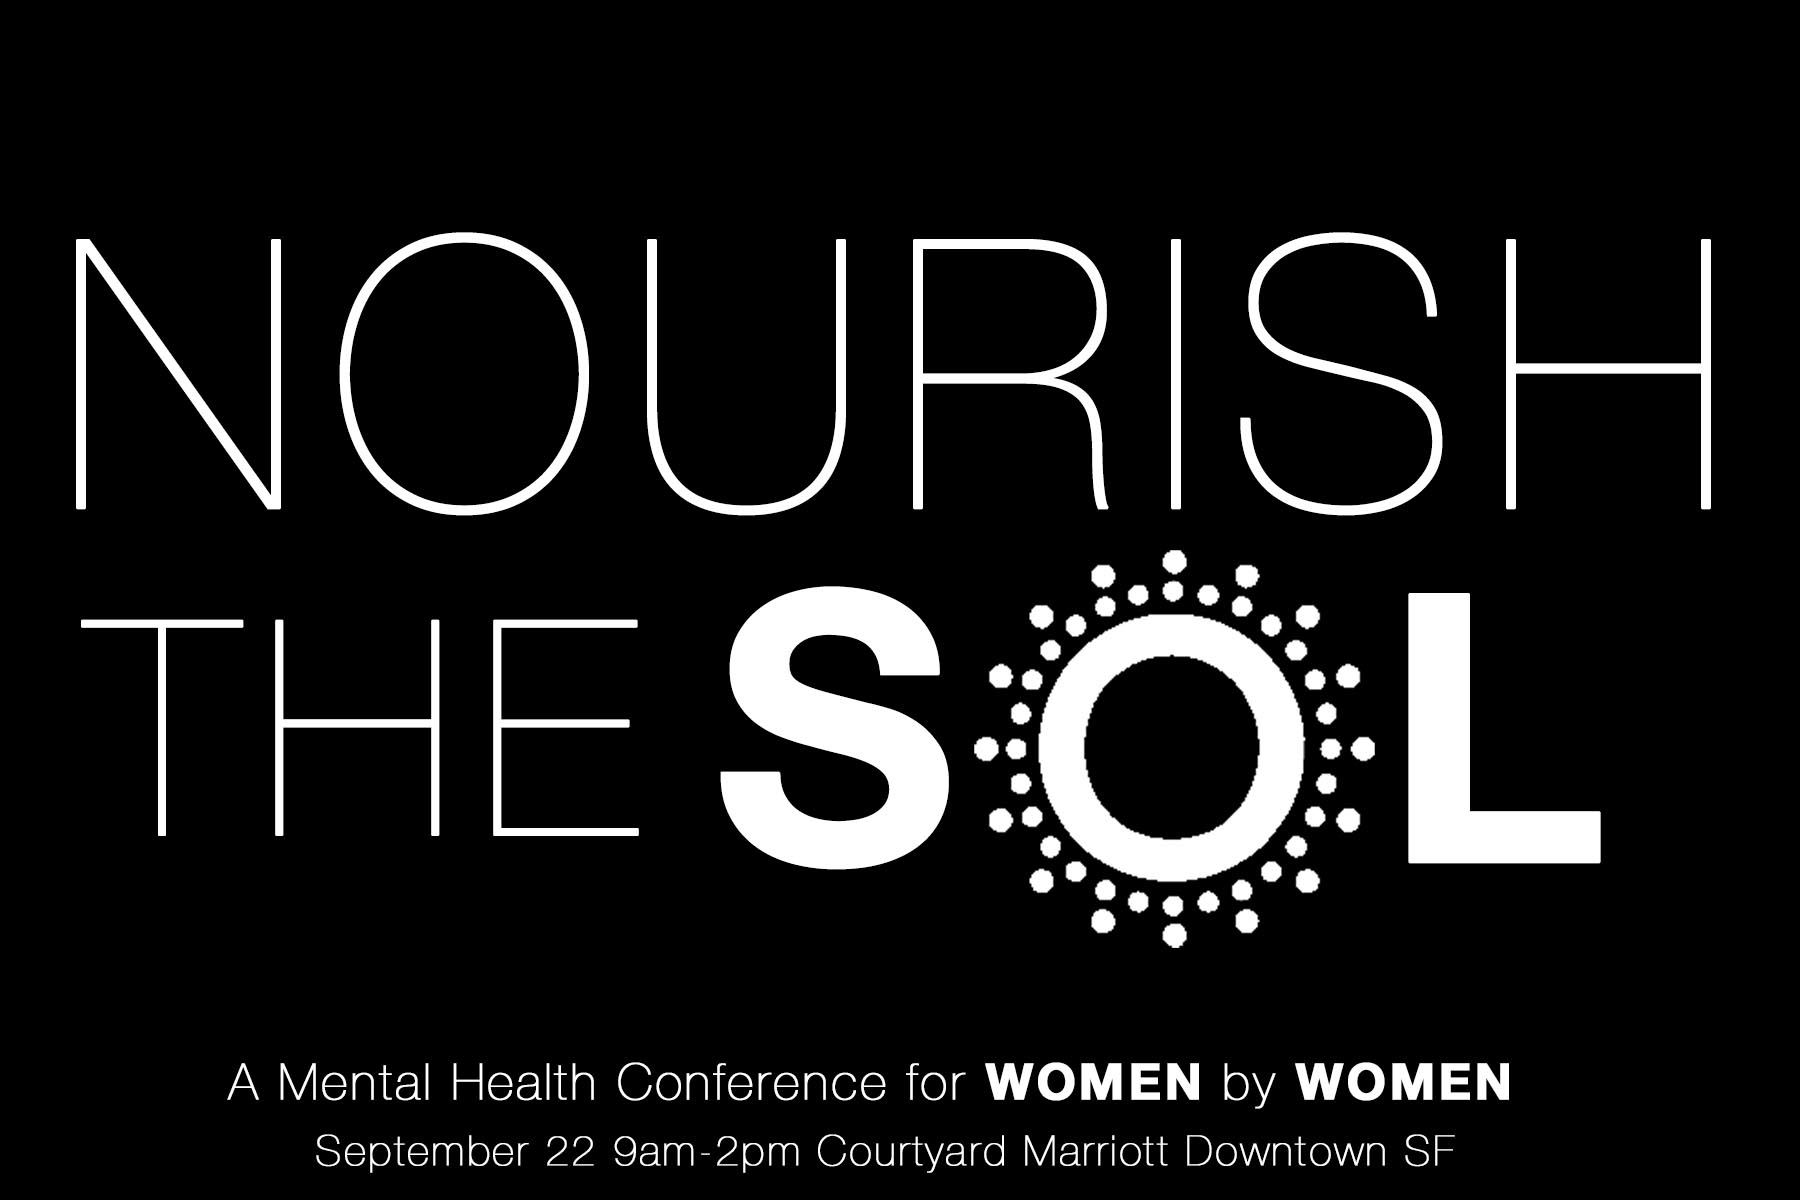 SAVE THE DATE! - This is our FIRST ever Mental Health Conference put on BY women FOR women! We are so excited about this and hope you will join us. Tickets will be available soon!